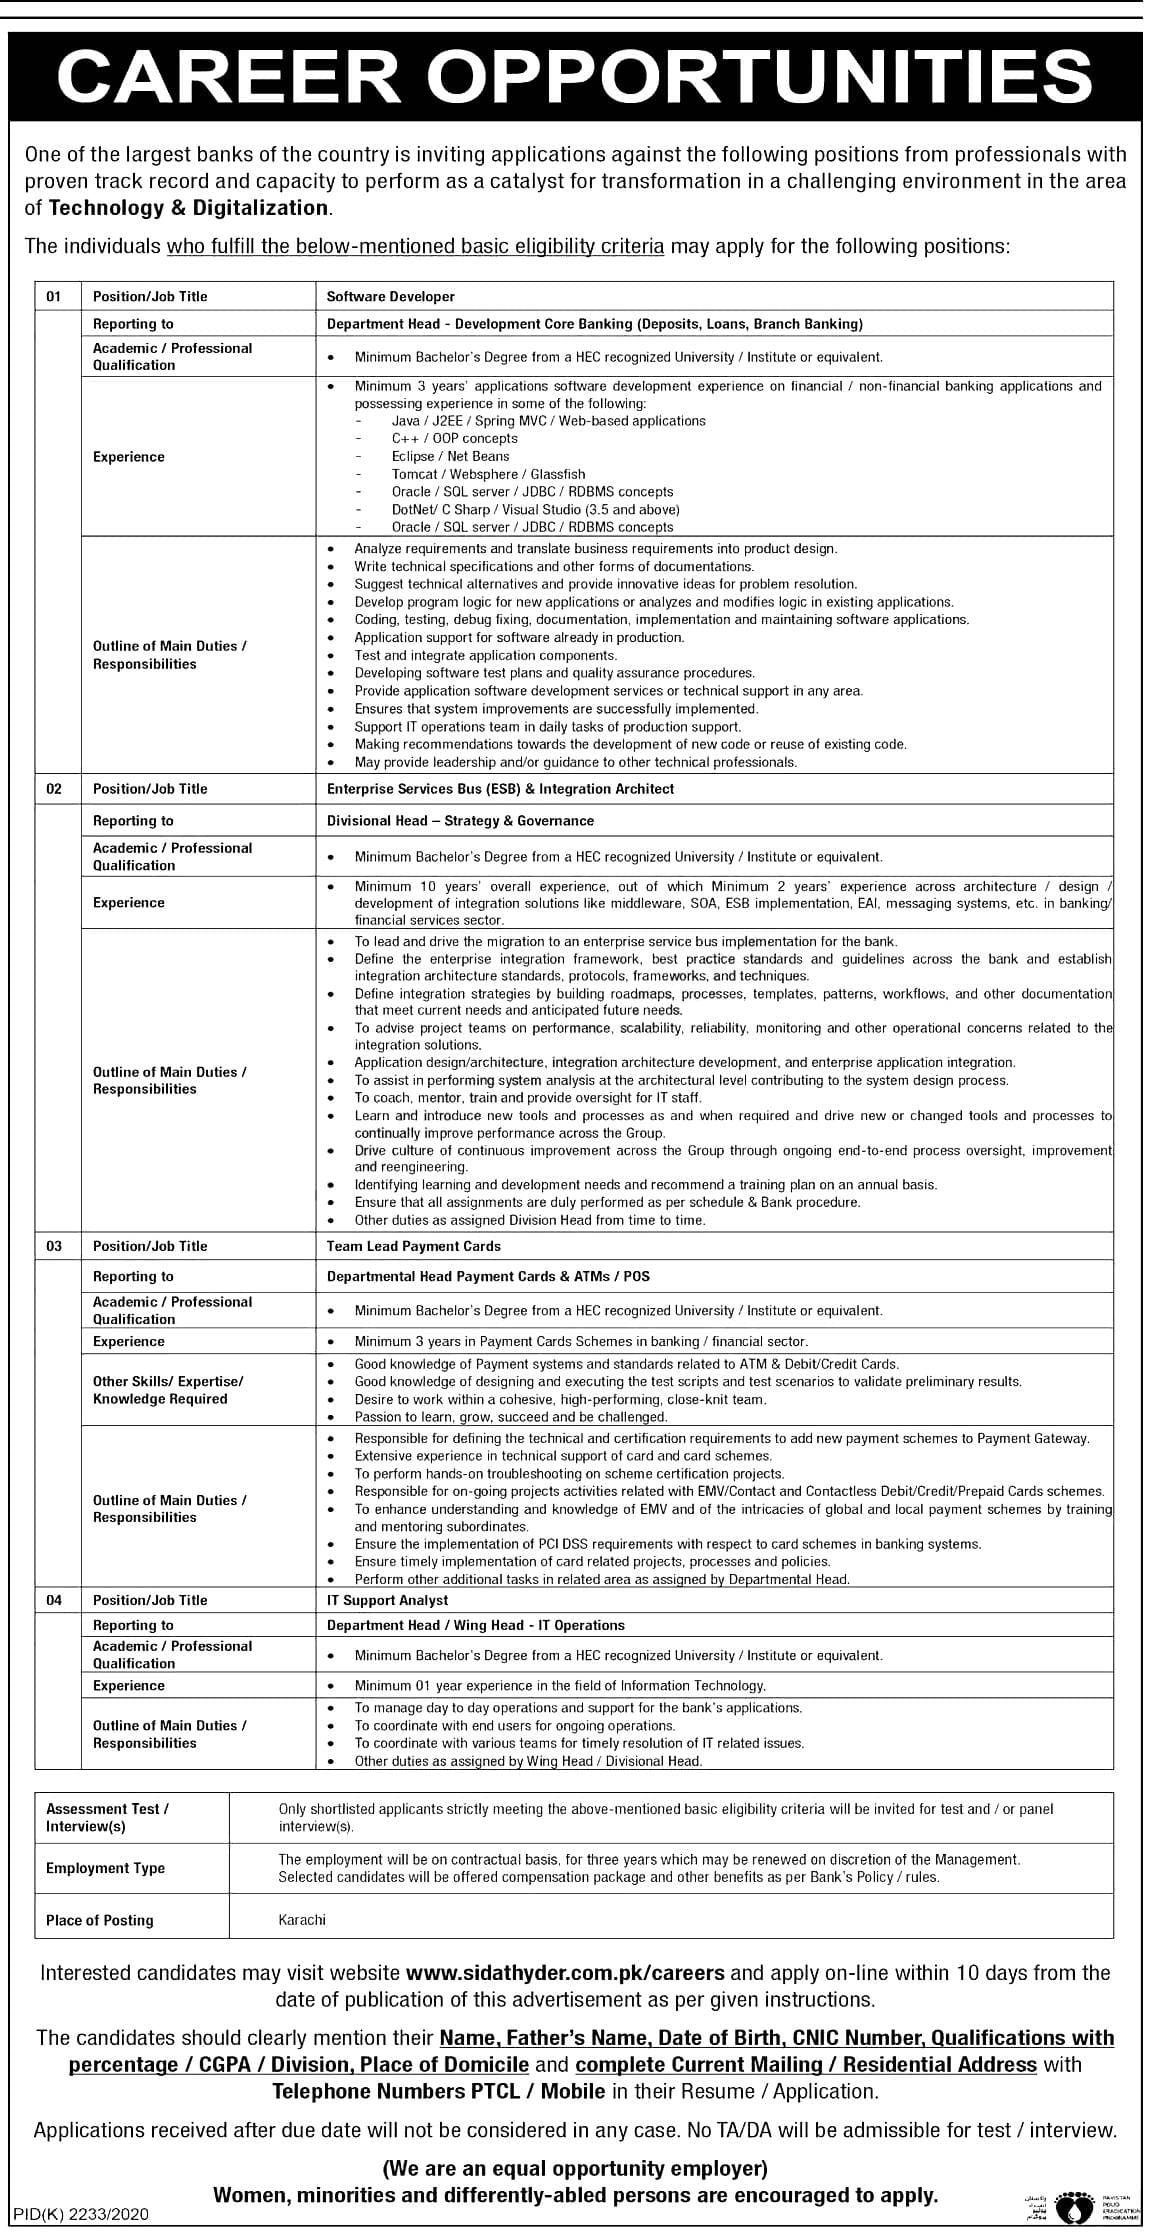 NBP National Bank of Pakistan Jobs 2021 Apply Online Eligibility Criteria Interview Dates